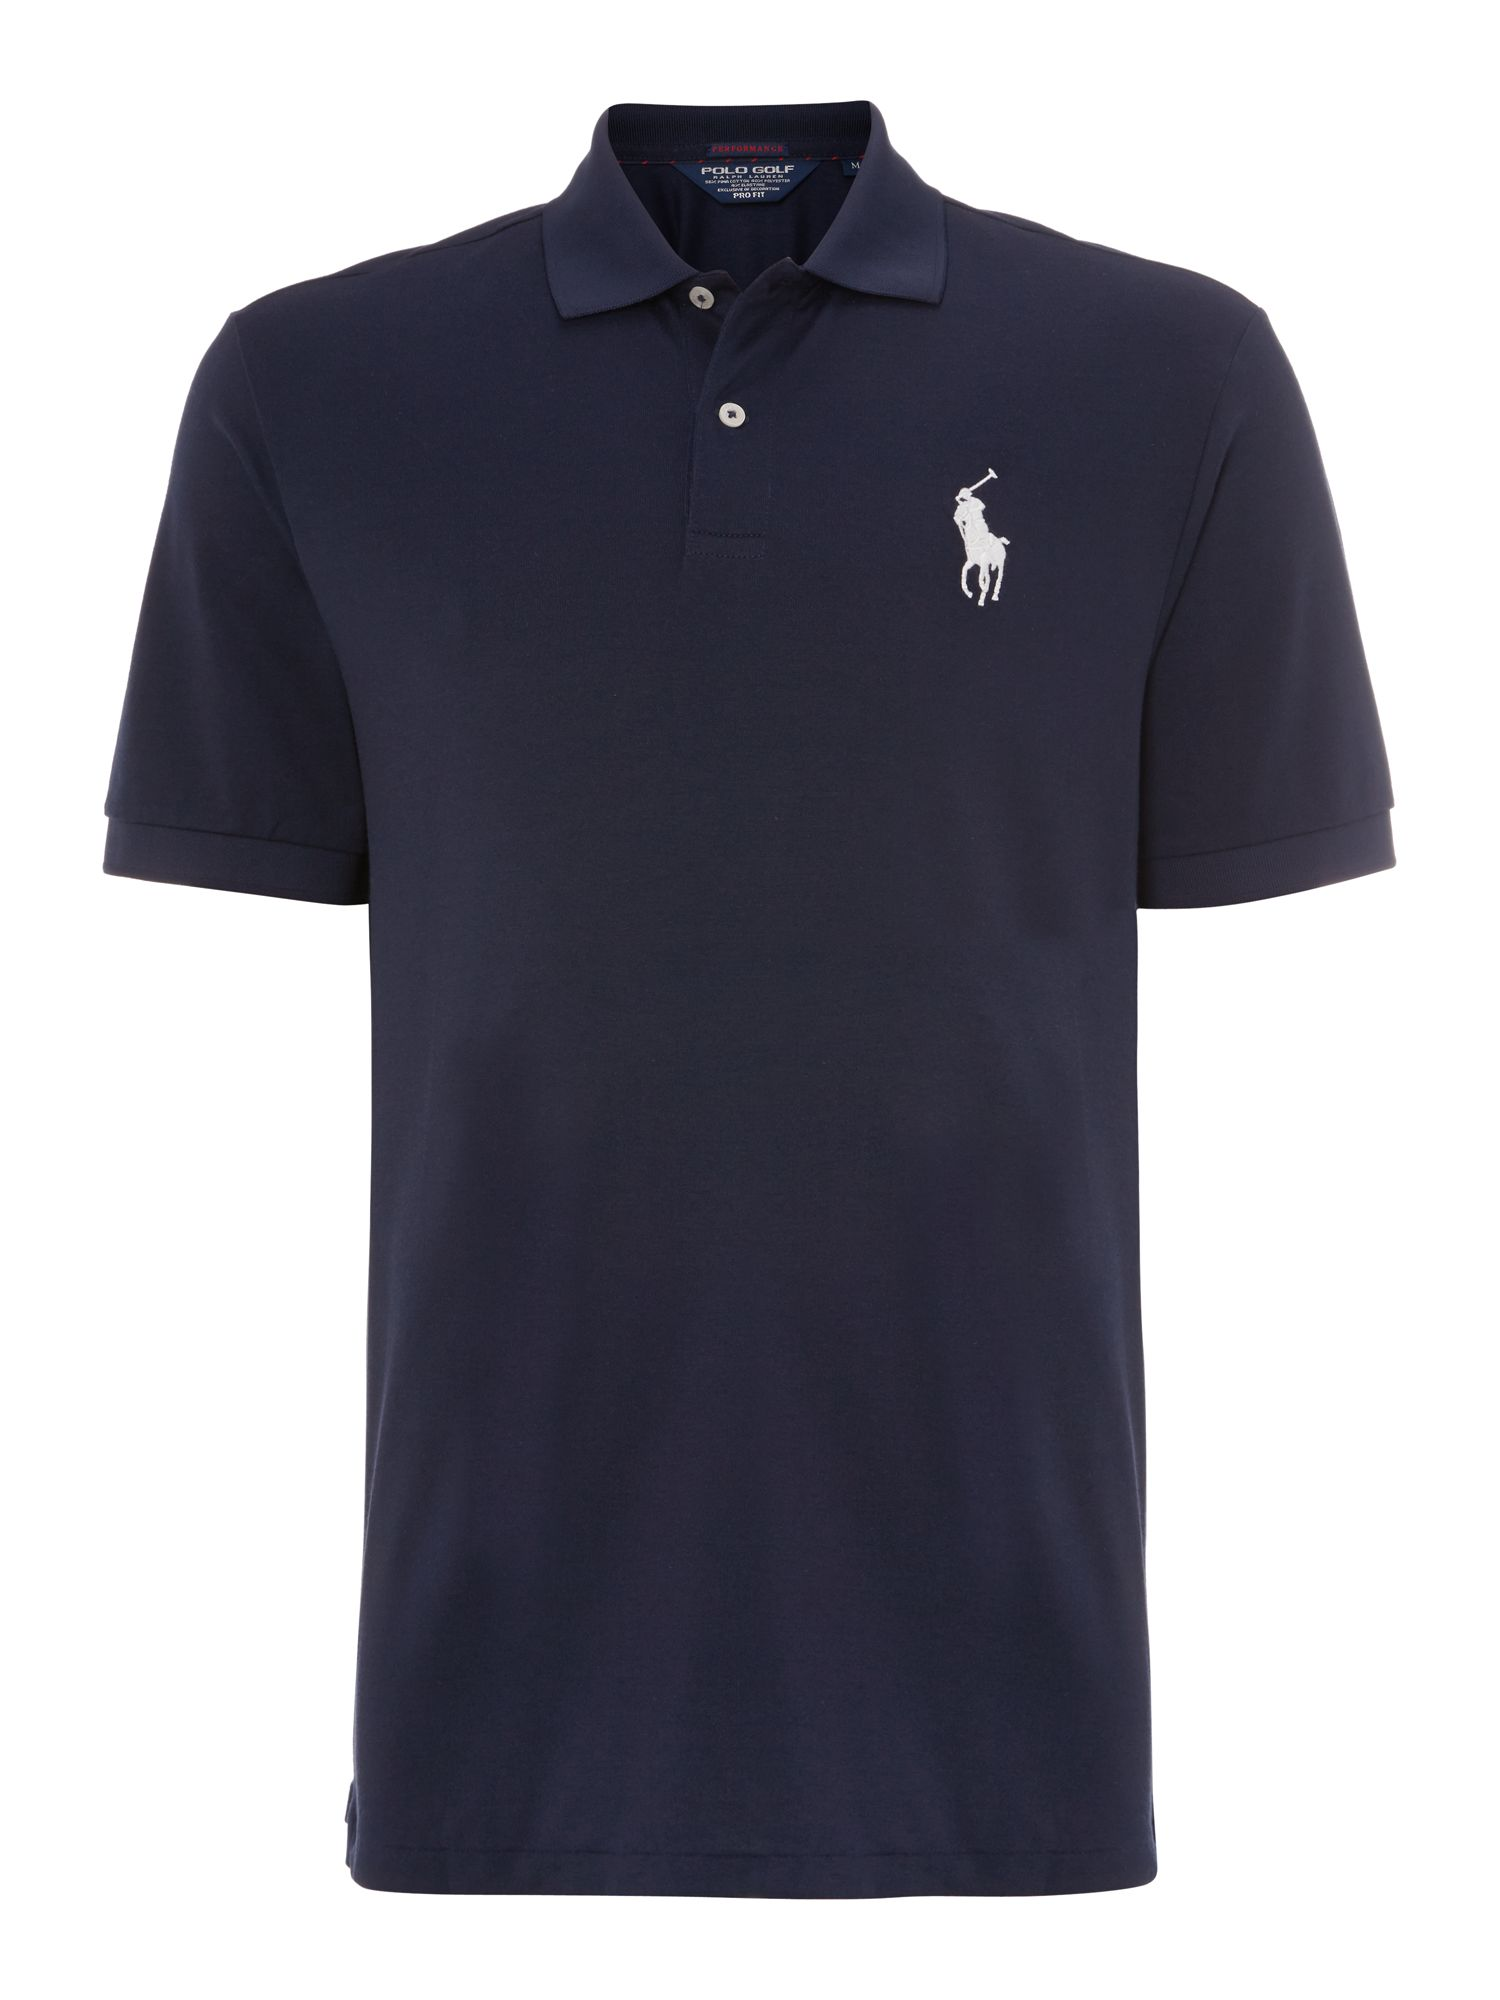 Moisture wicking pro fit polo shirt